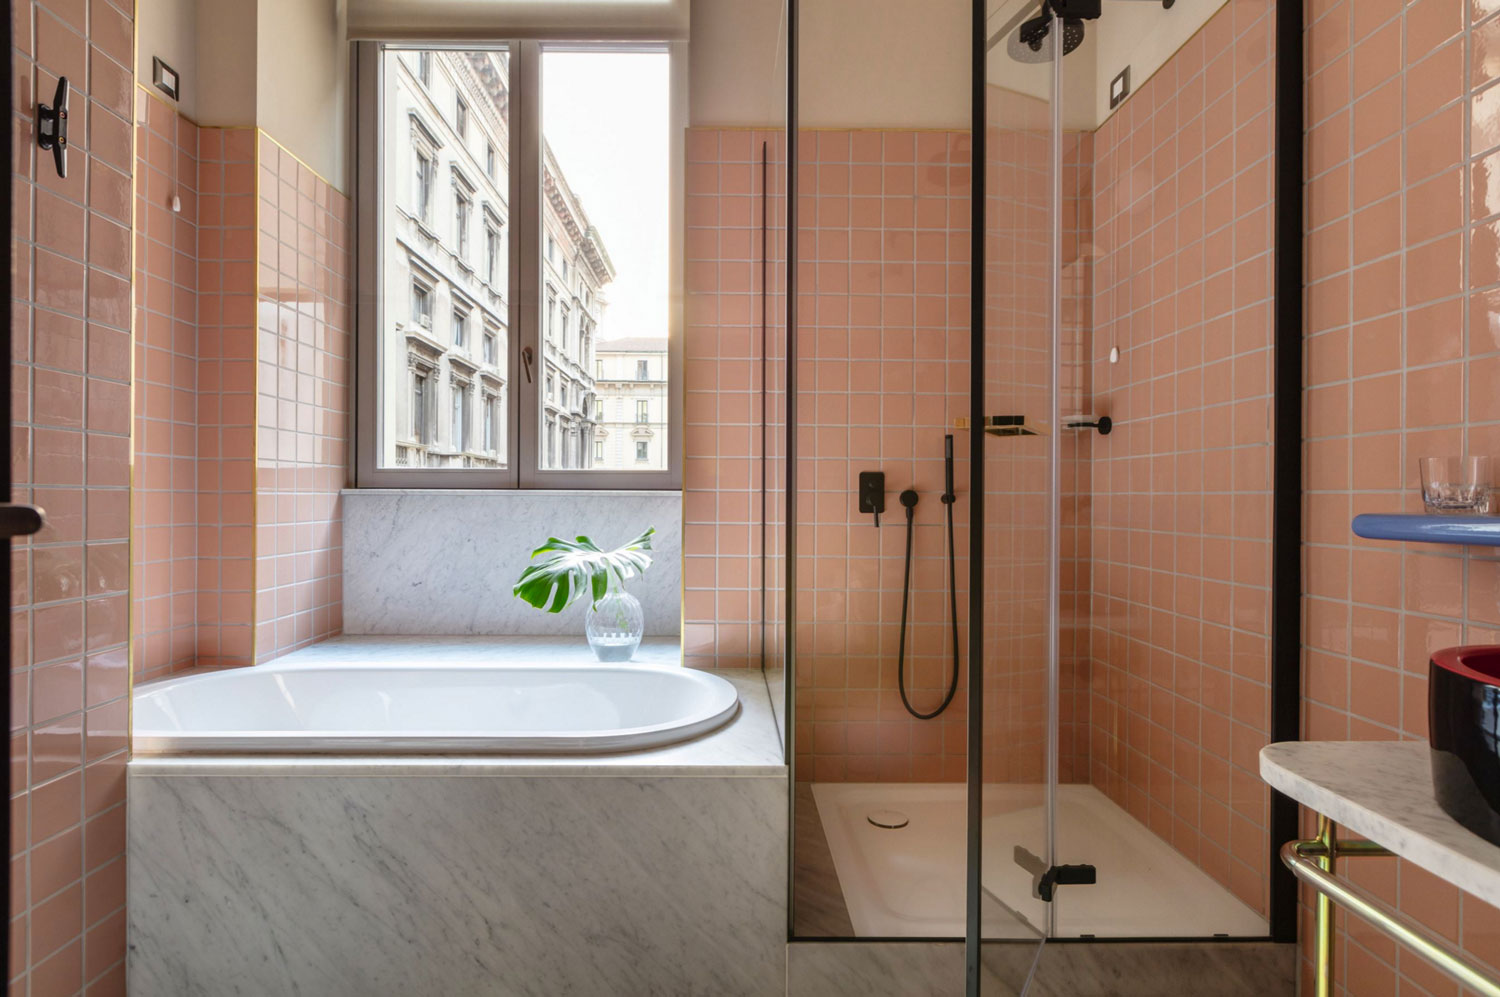 Room Mate Giulia Hotel in Milan by Patricia Urquiola | Yellowtrace